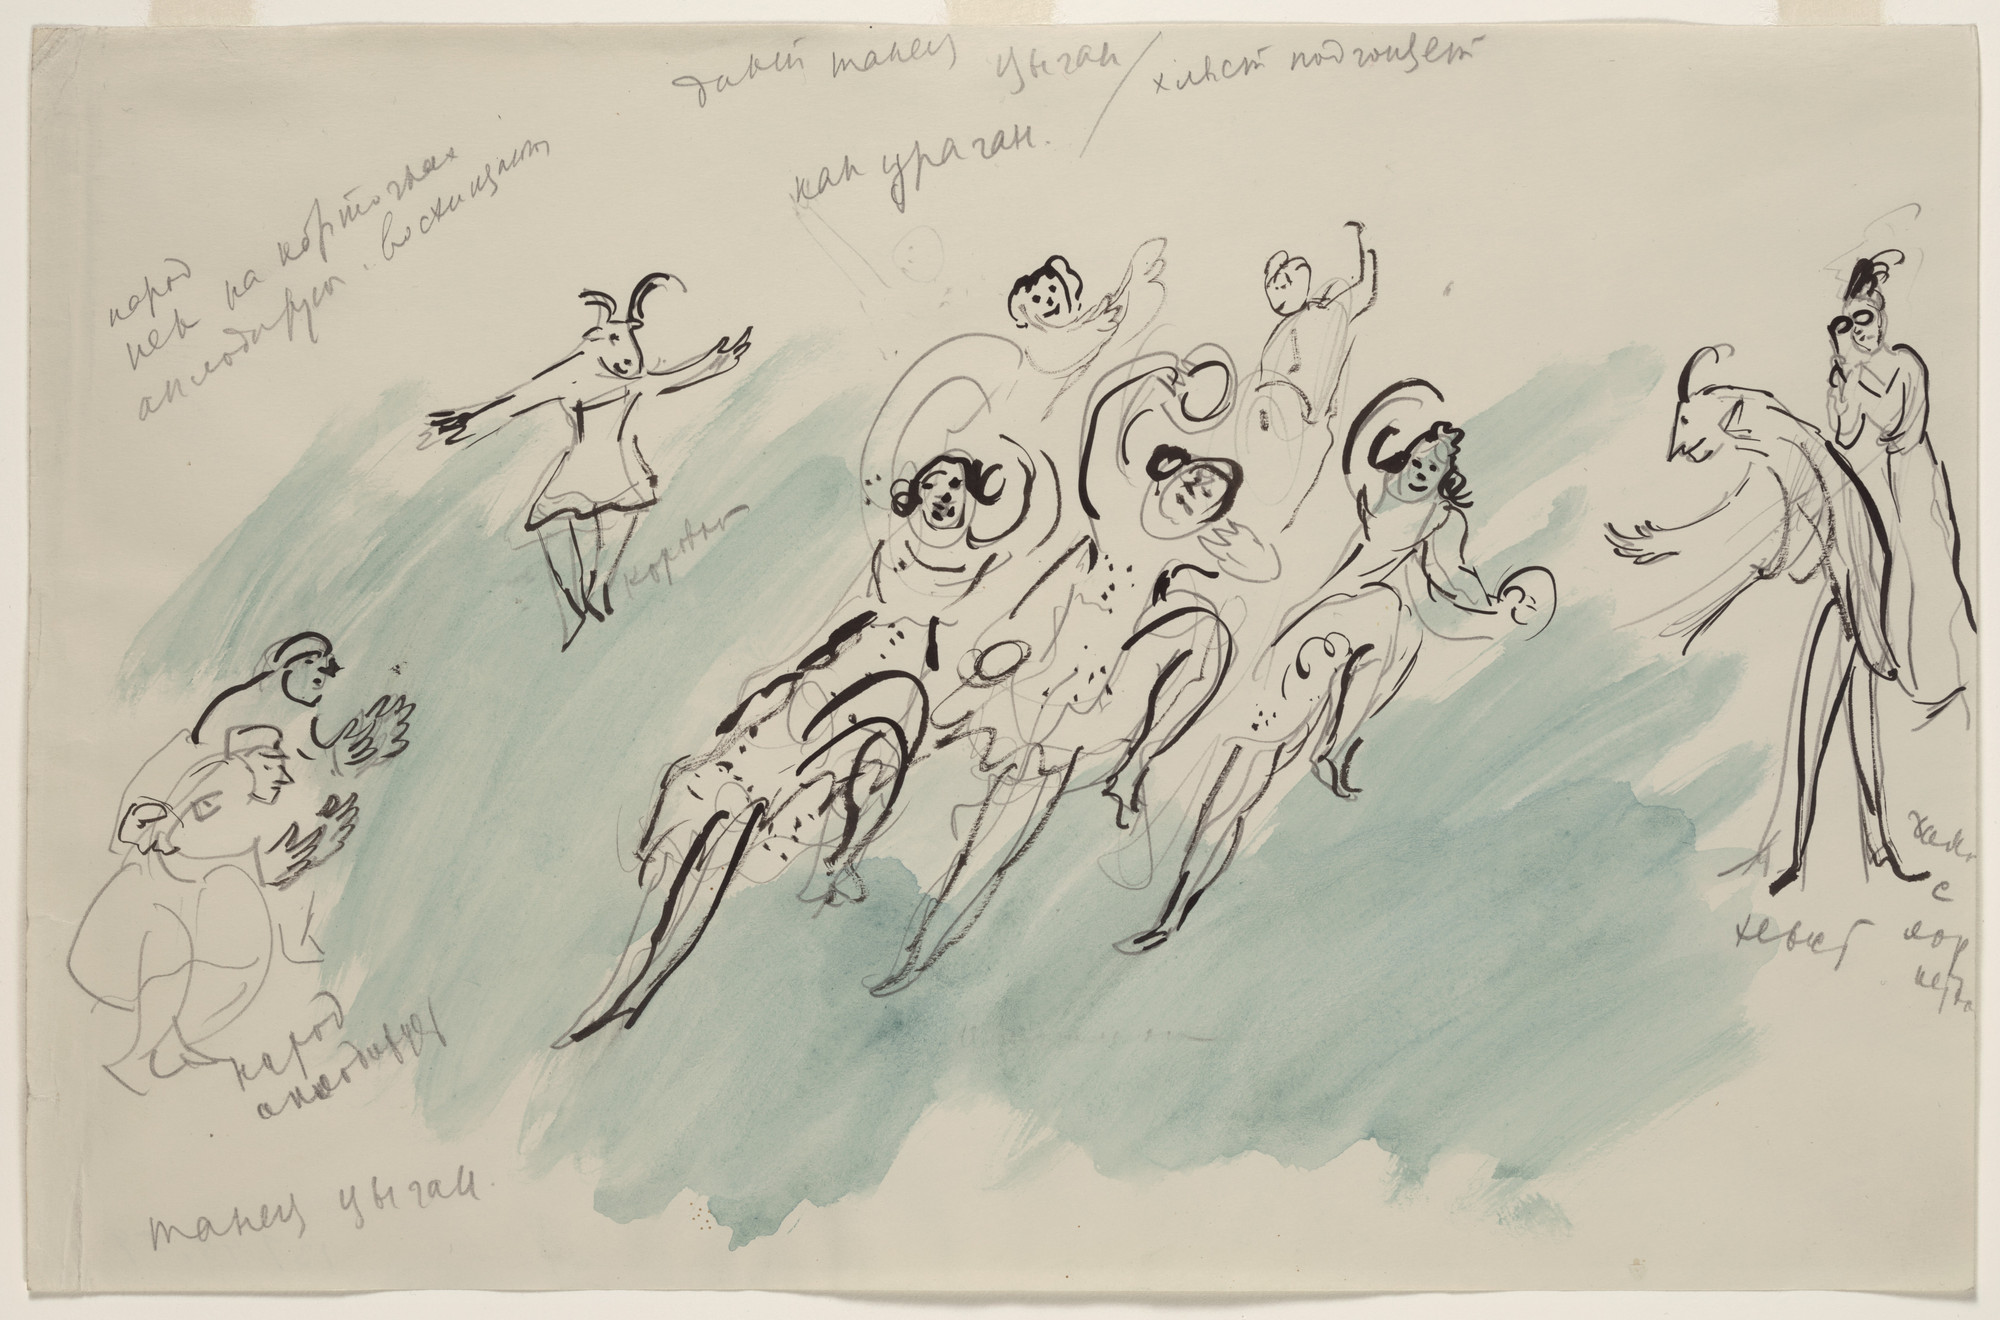 Marc Chagall. Dance of the Gypsies. Sketch for the choreographer for scene 4 of the ballet Aleko. (1942)